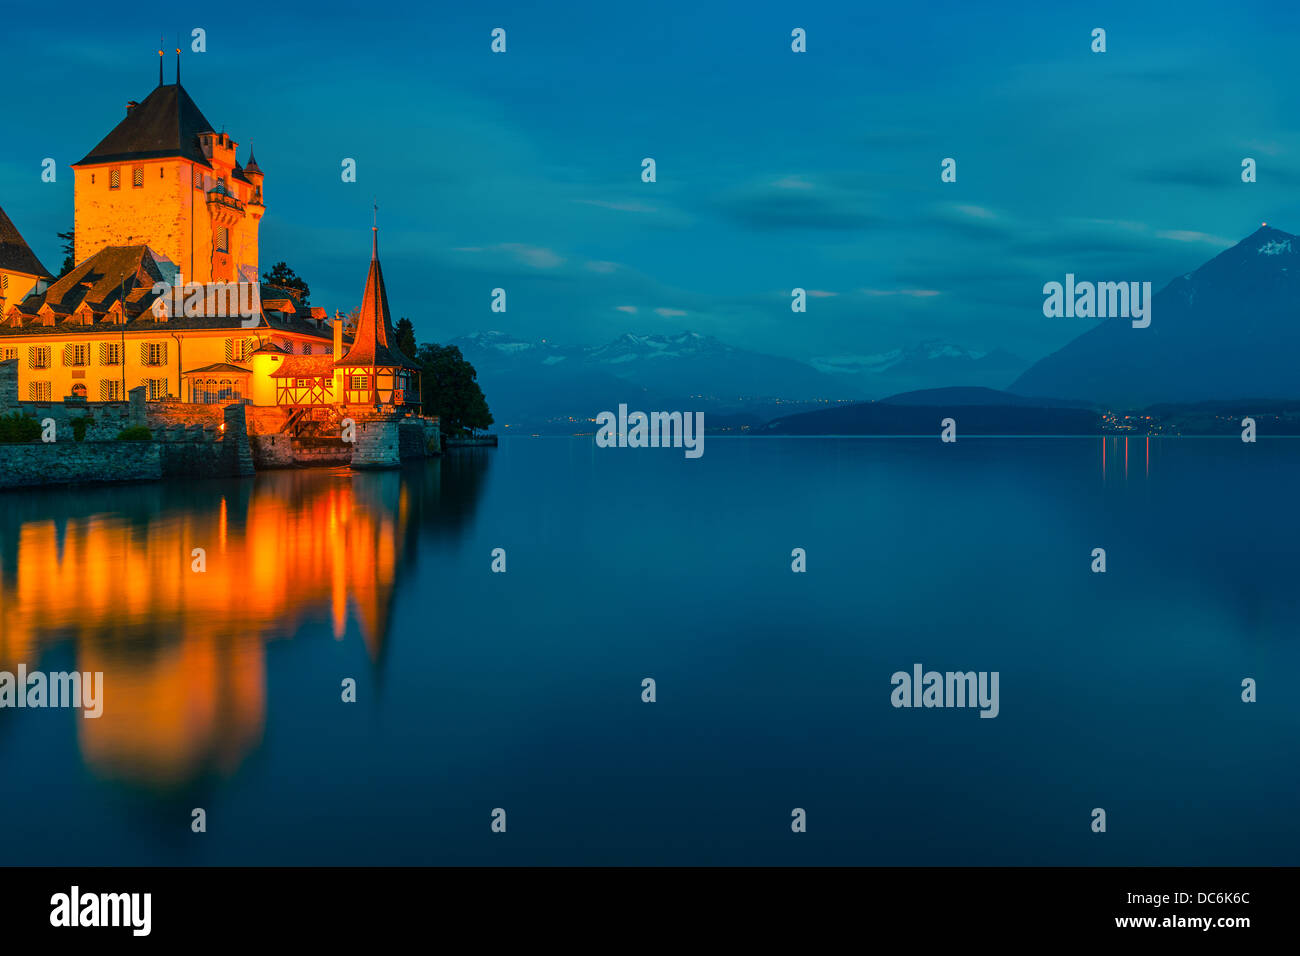 The castle at Oberhofen looking out over Lake Thun, Switzerland. - Stock Image